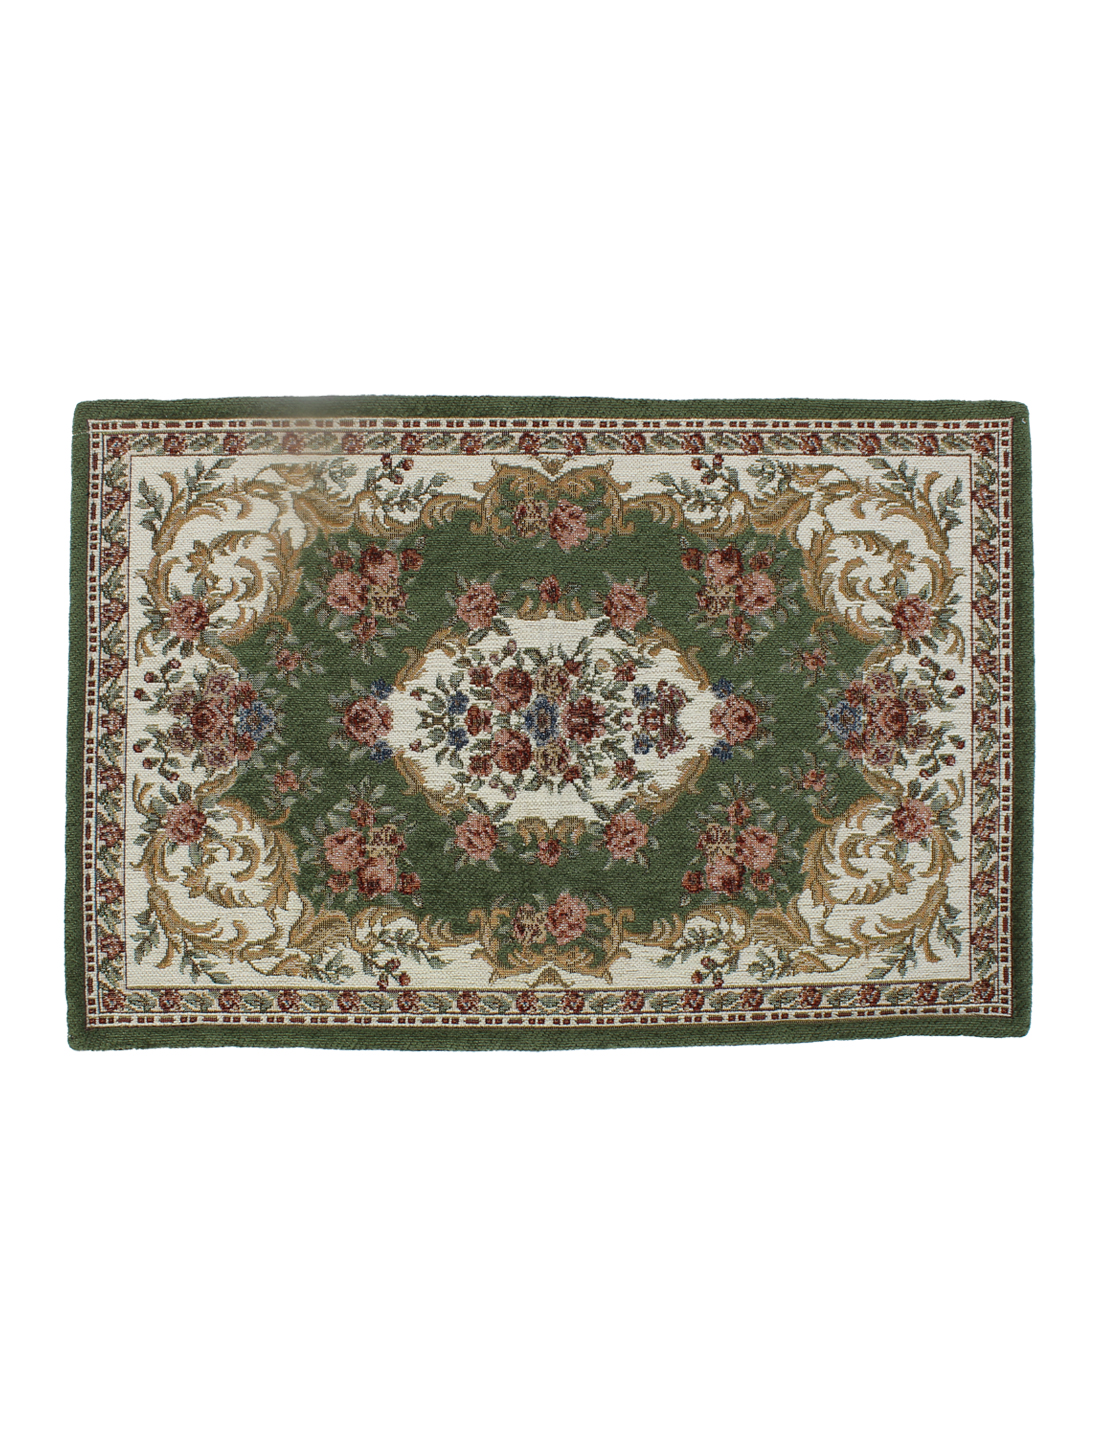 Home Flower Pattern Rectangle Shaped Floor Mat Area Rug Carpet Green 60x40cm